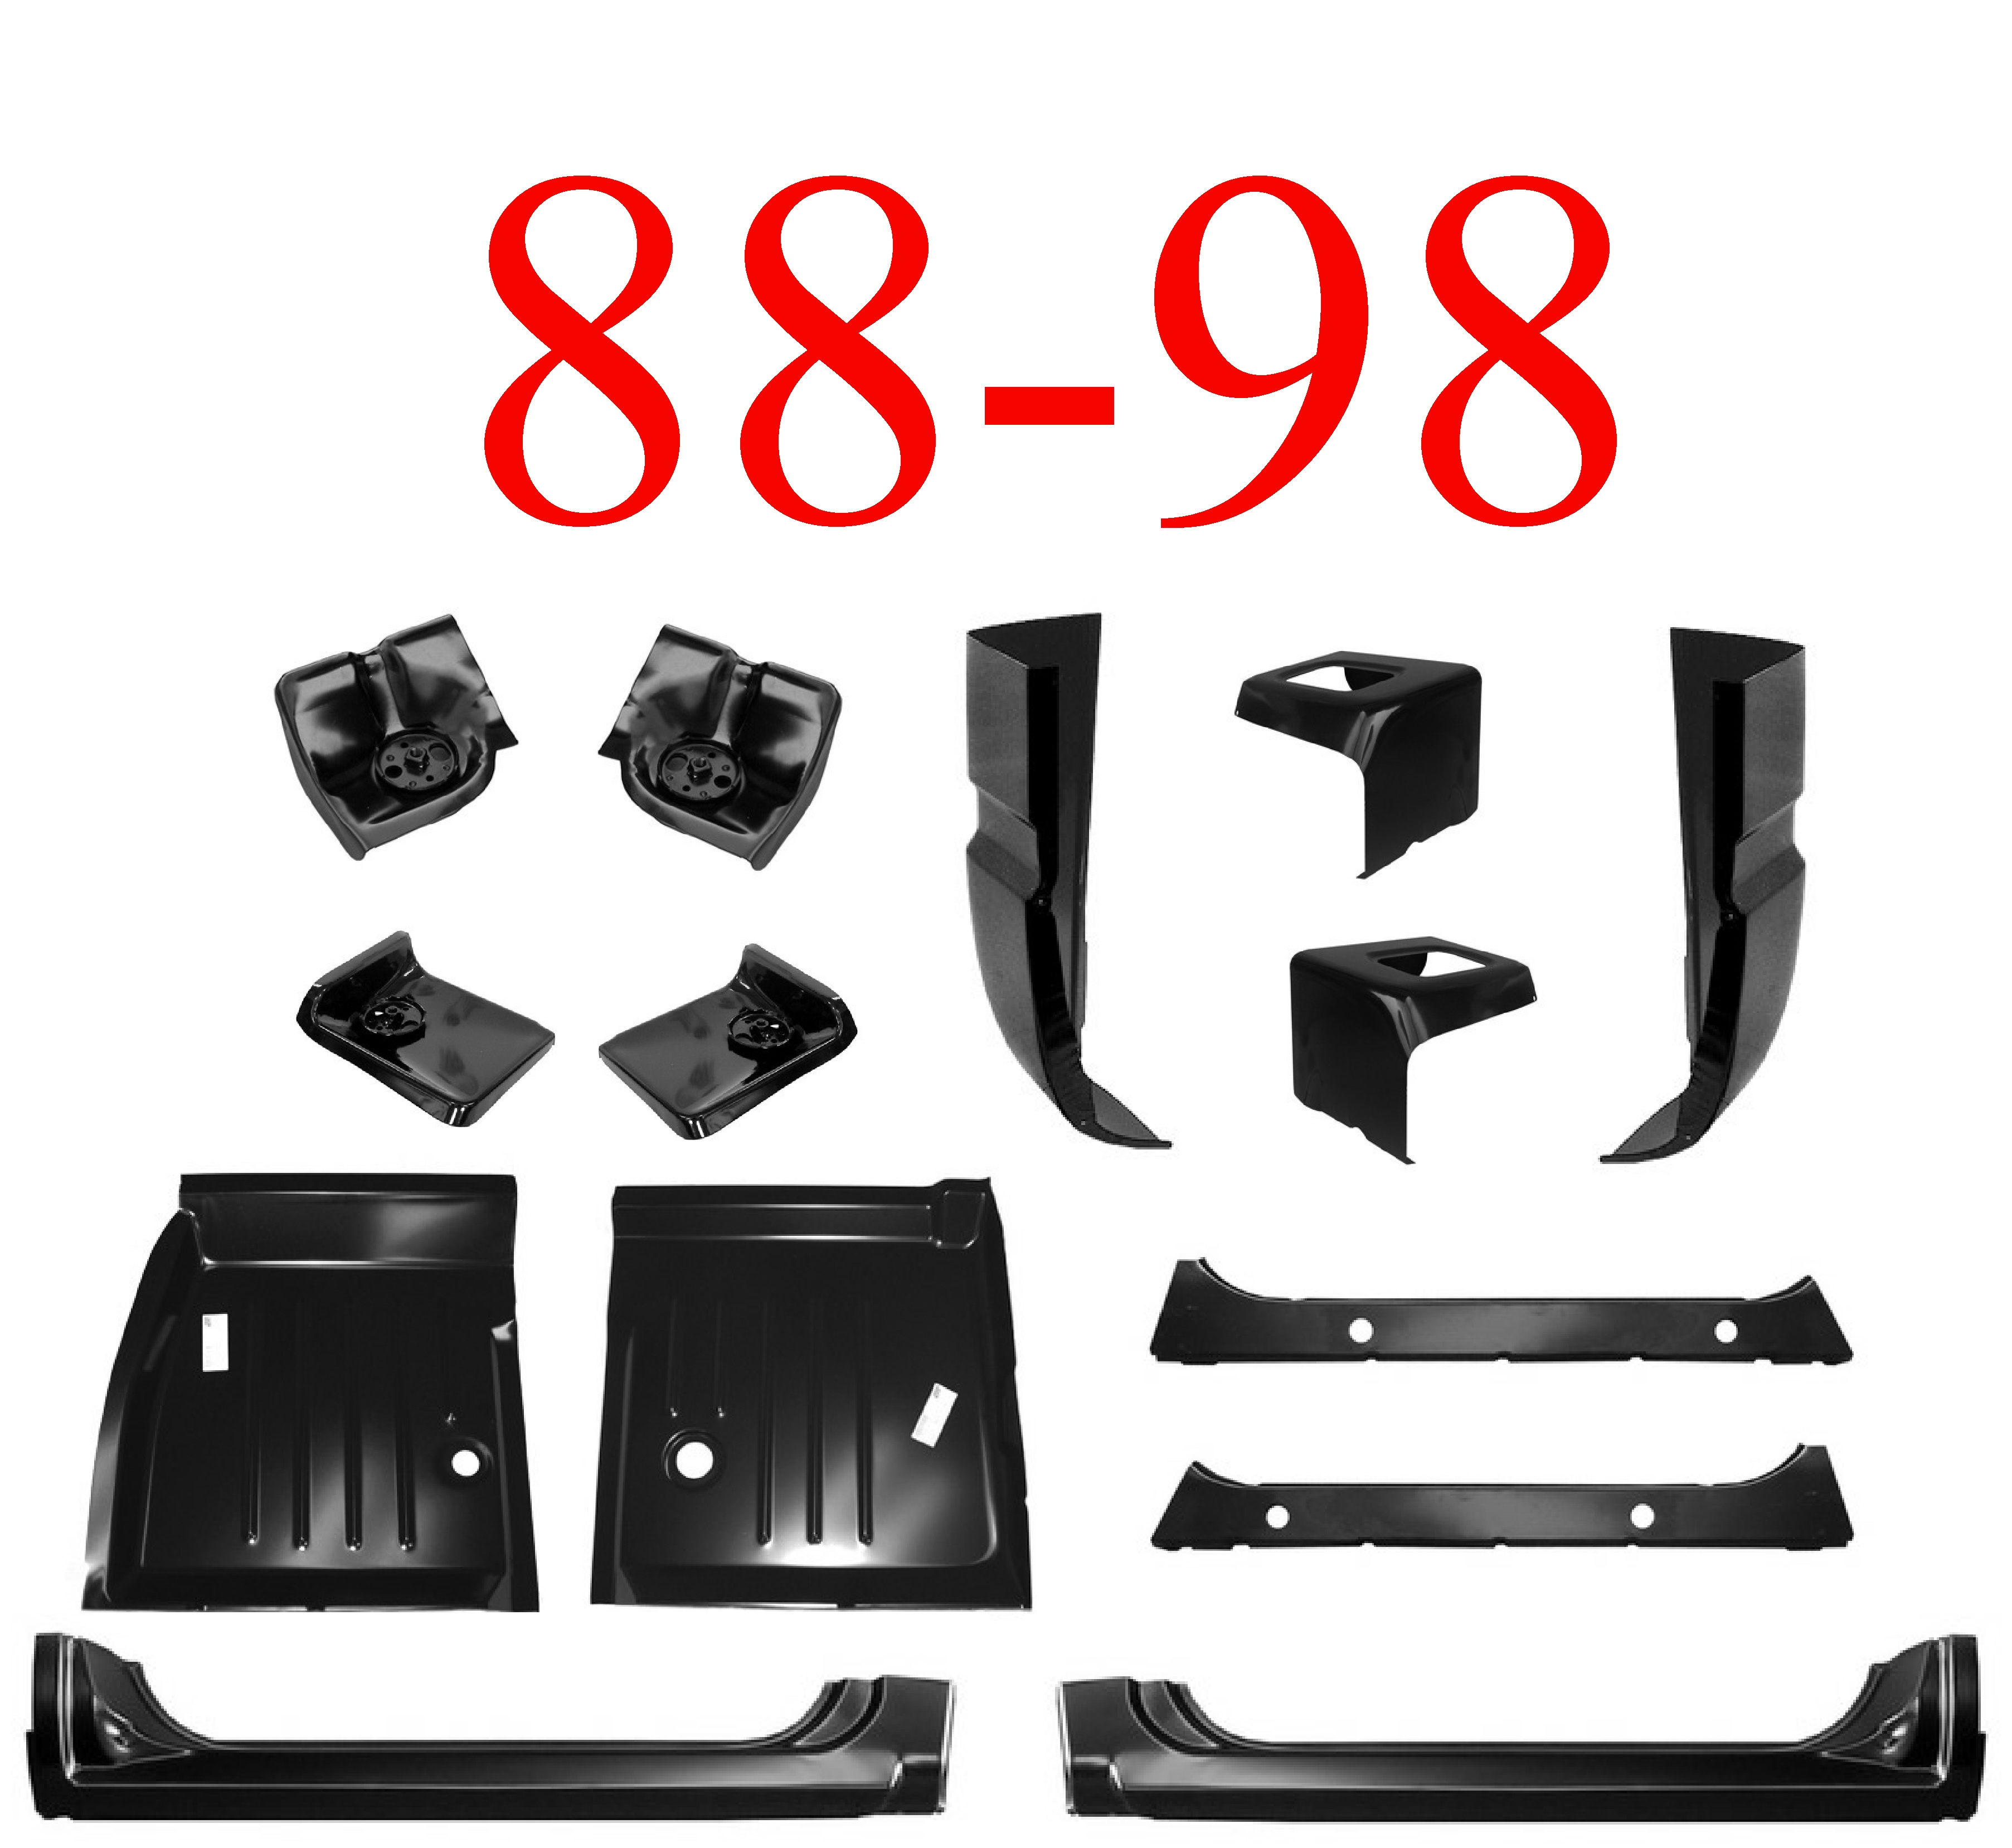 88-98 14Pc Regular Cab Kit, X-Rockers & Floors